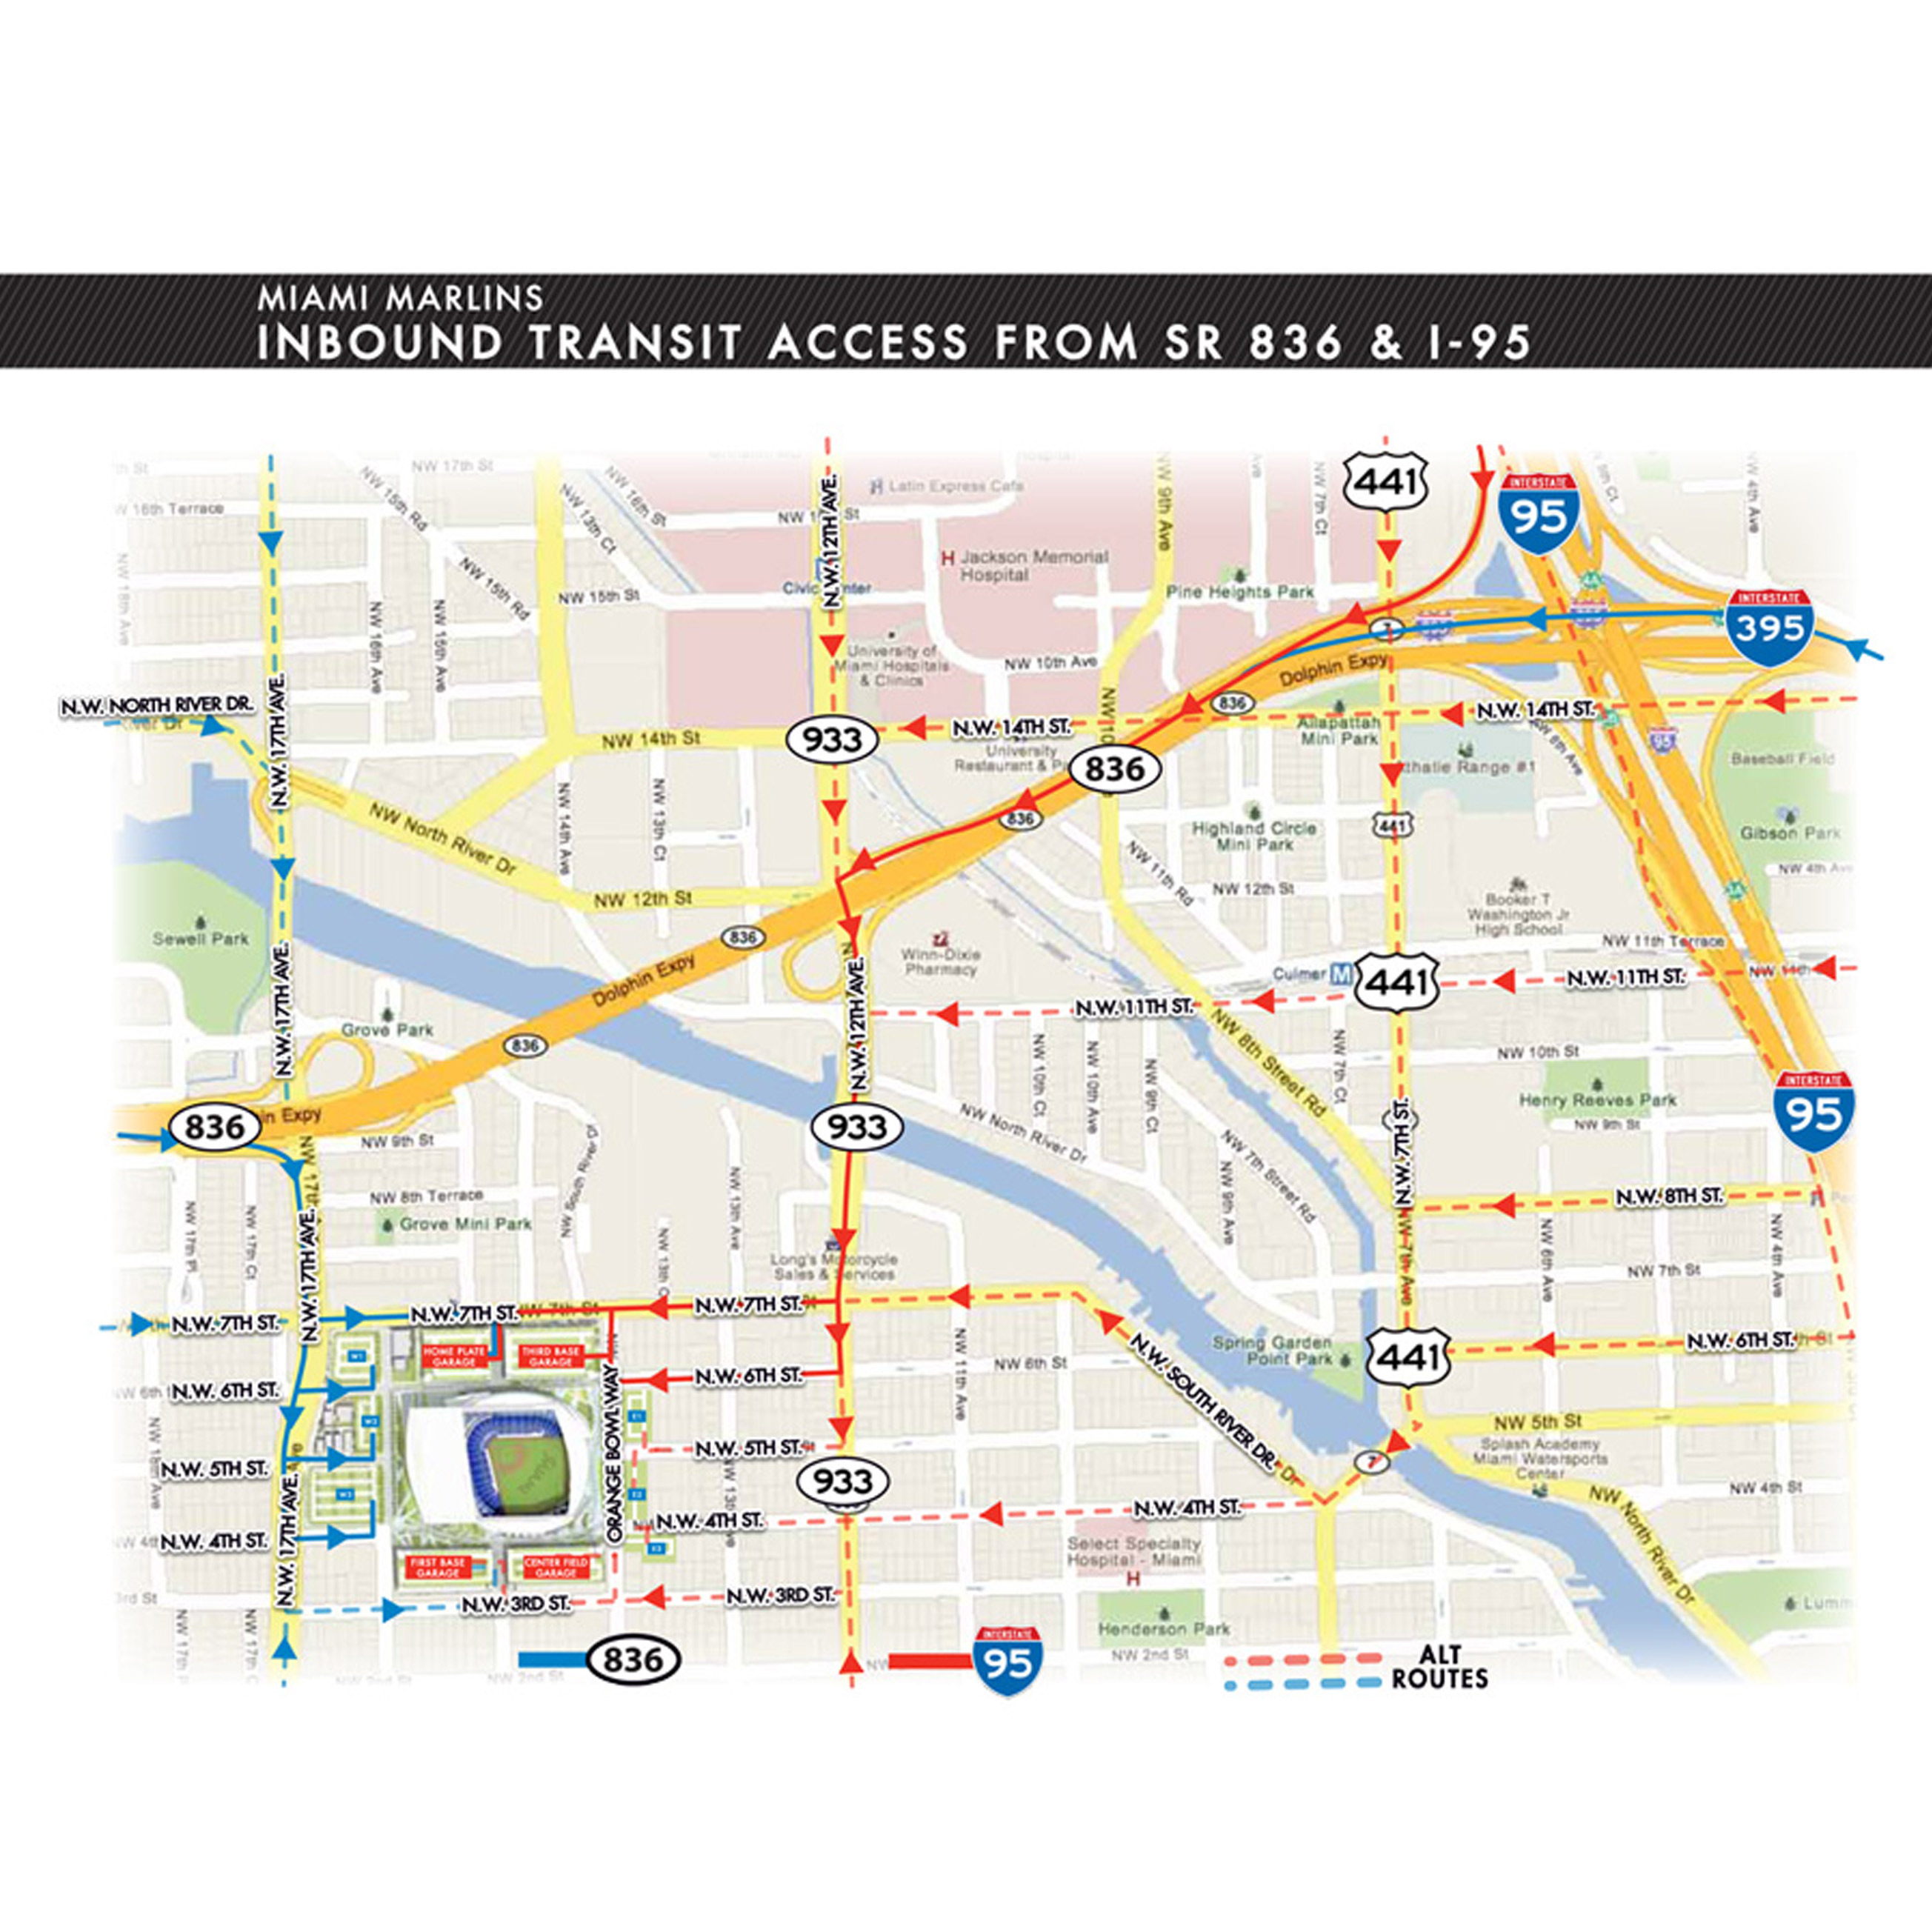 Driving Directions To Marlins Park Miami Marlins